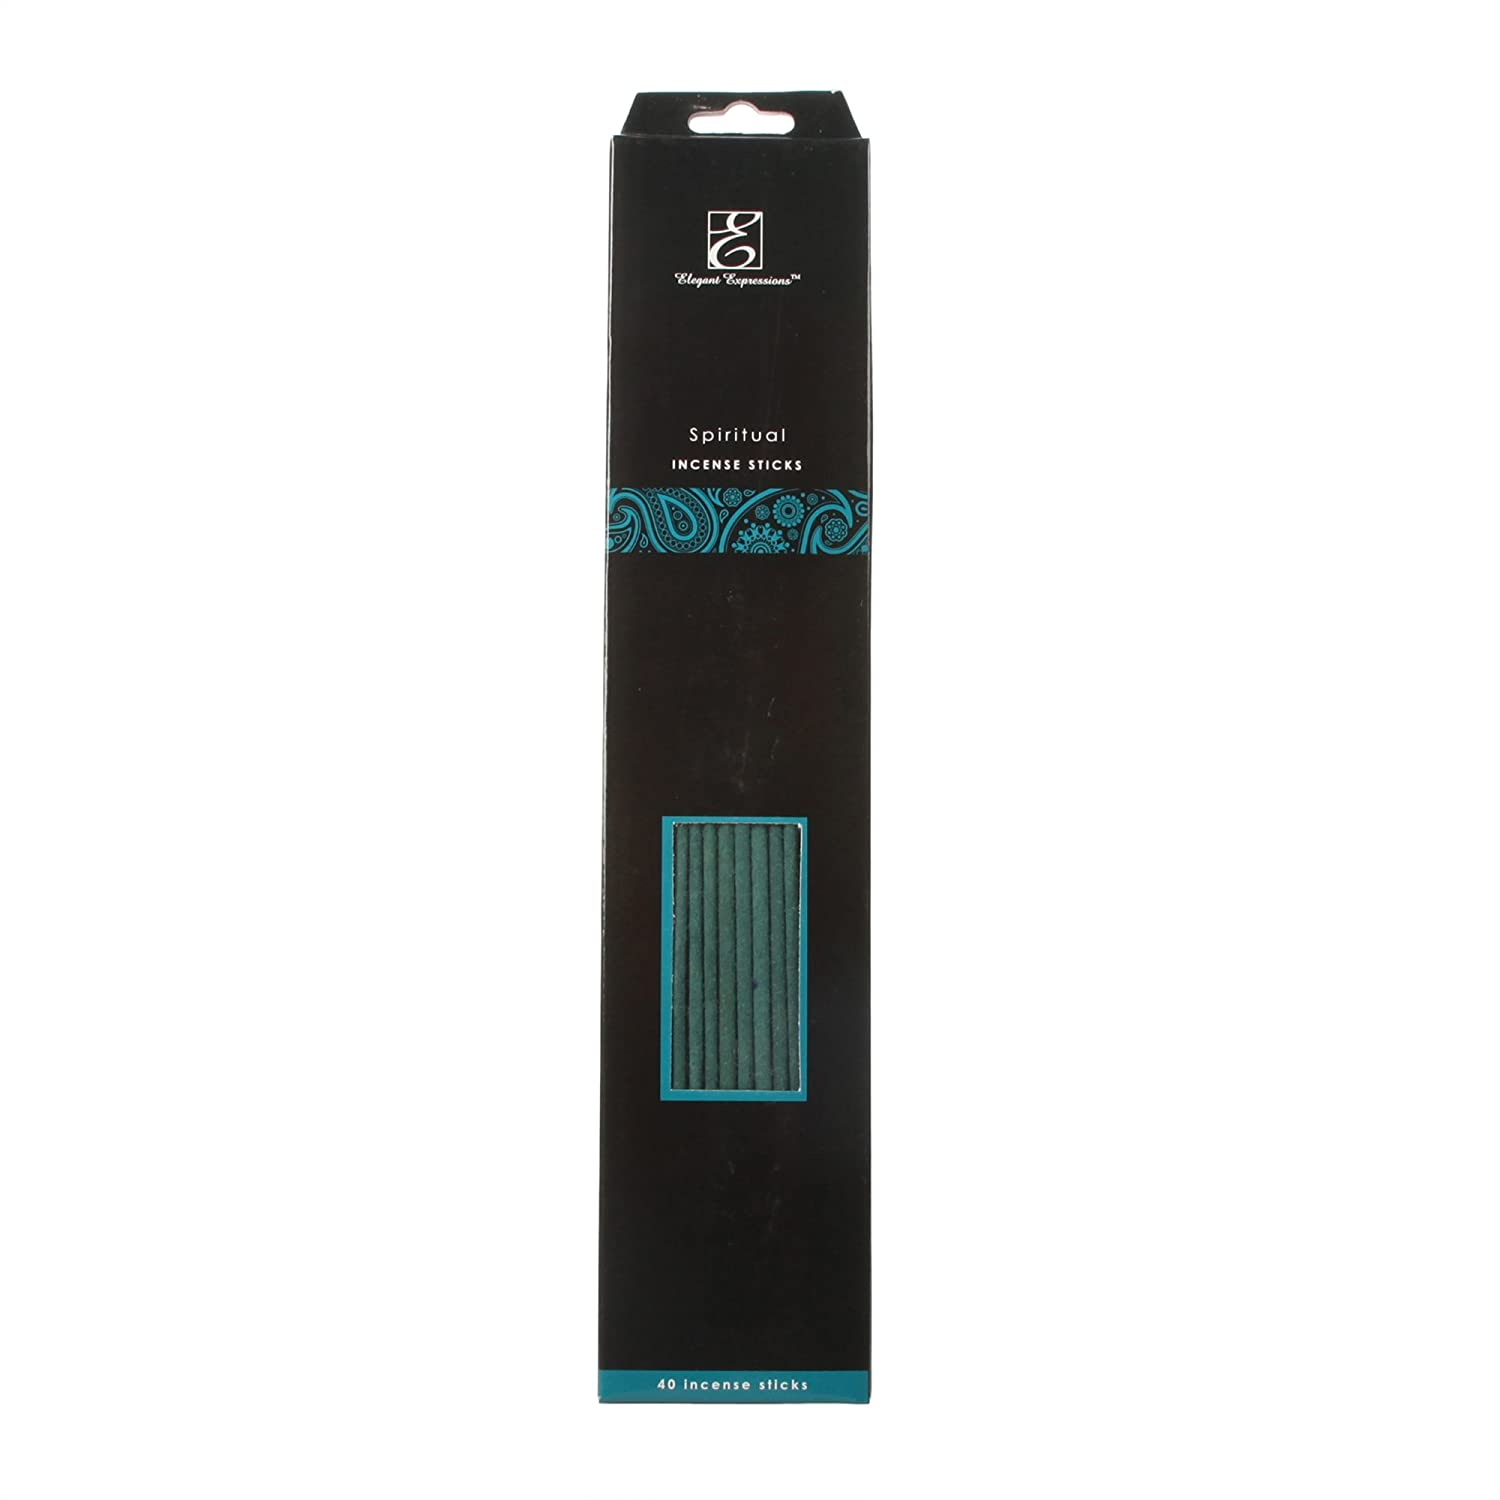 Hosley 's Highly Fragranced Spiritual Incense Sticks 240パック、Infused with Essential Oils。Ideal For結婚式、イベント、アロマセラピー、Spa,レイキ、瞑想、浴室設定o6。 B00OI01D5E